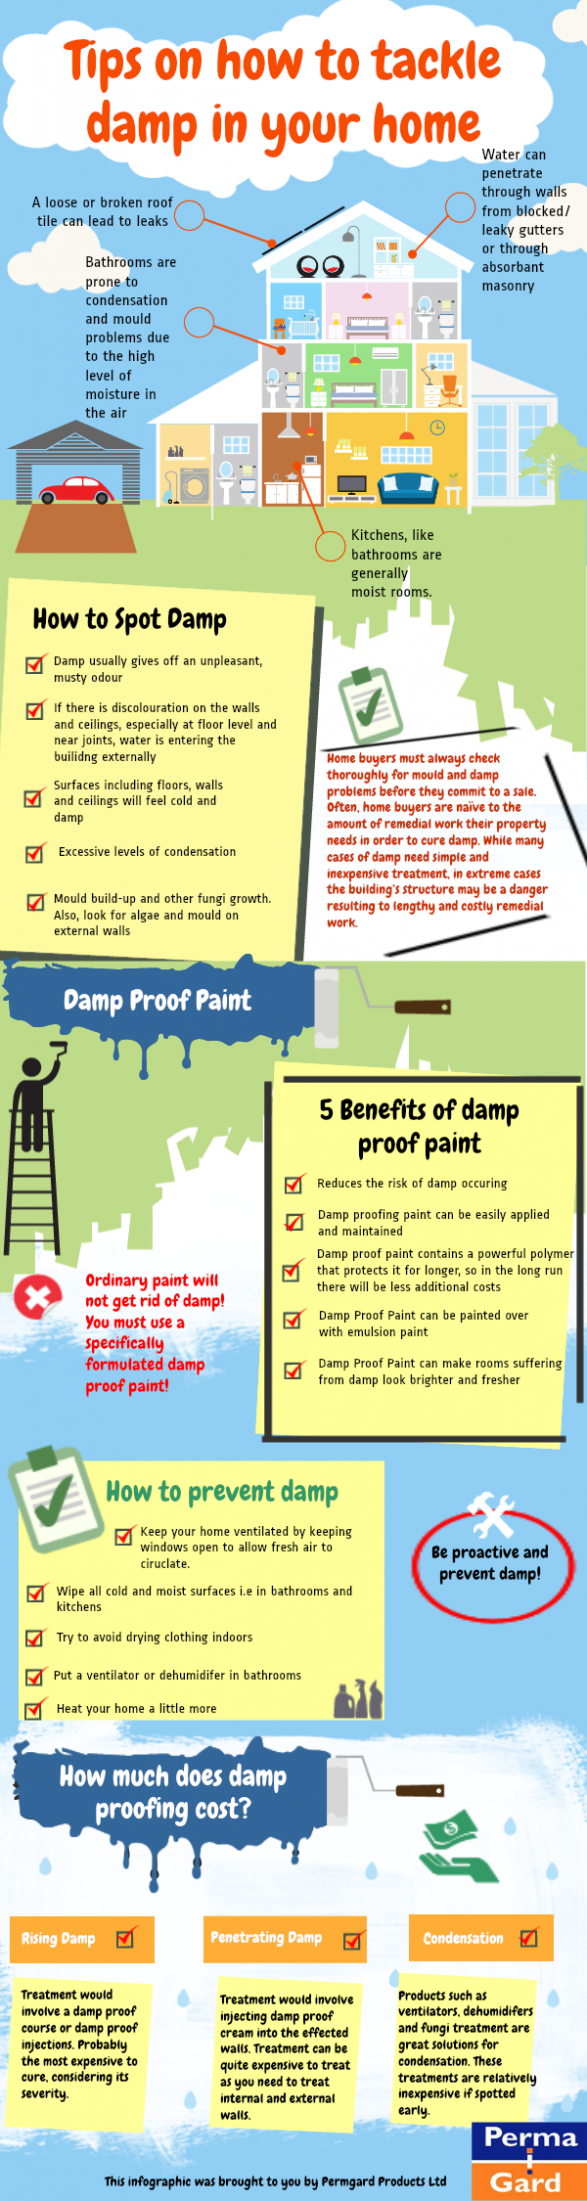 Tips on how to tackle damp in your home